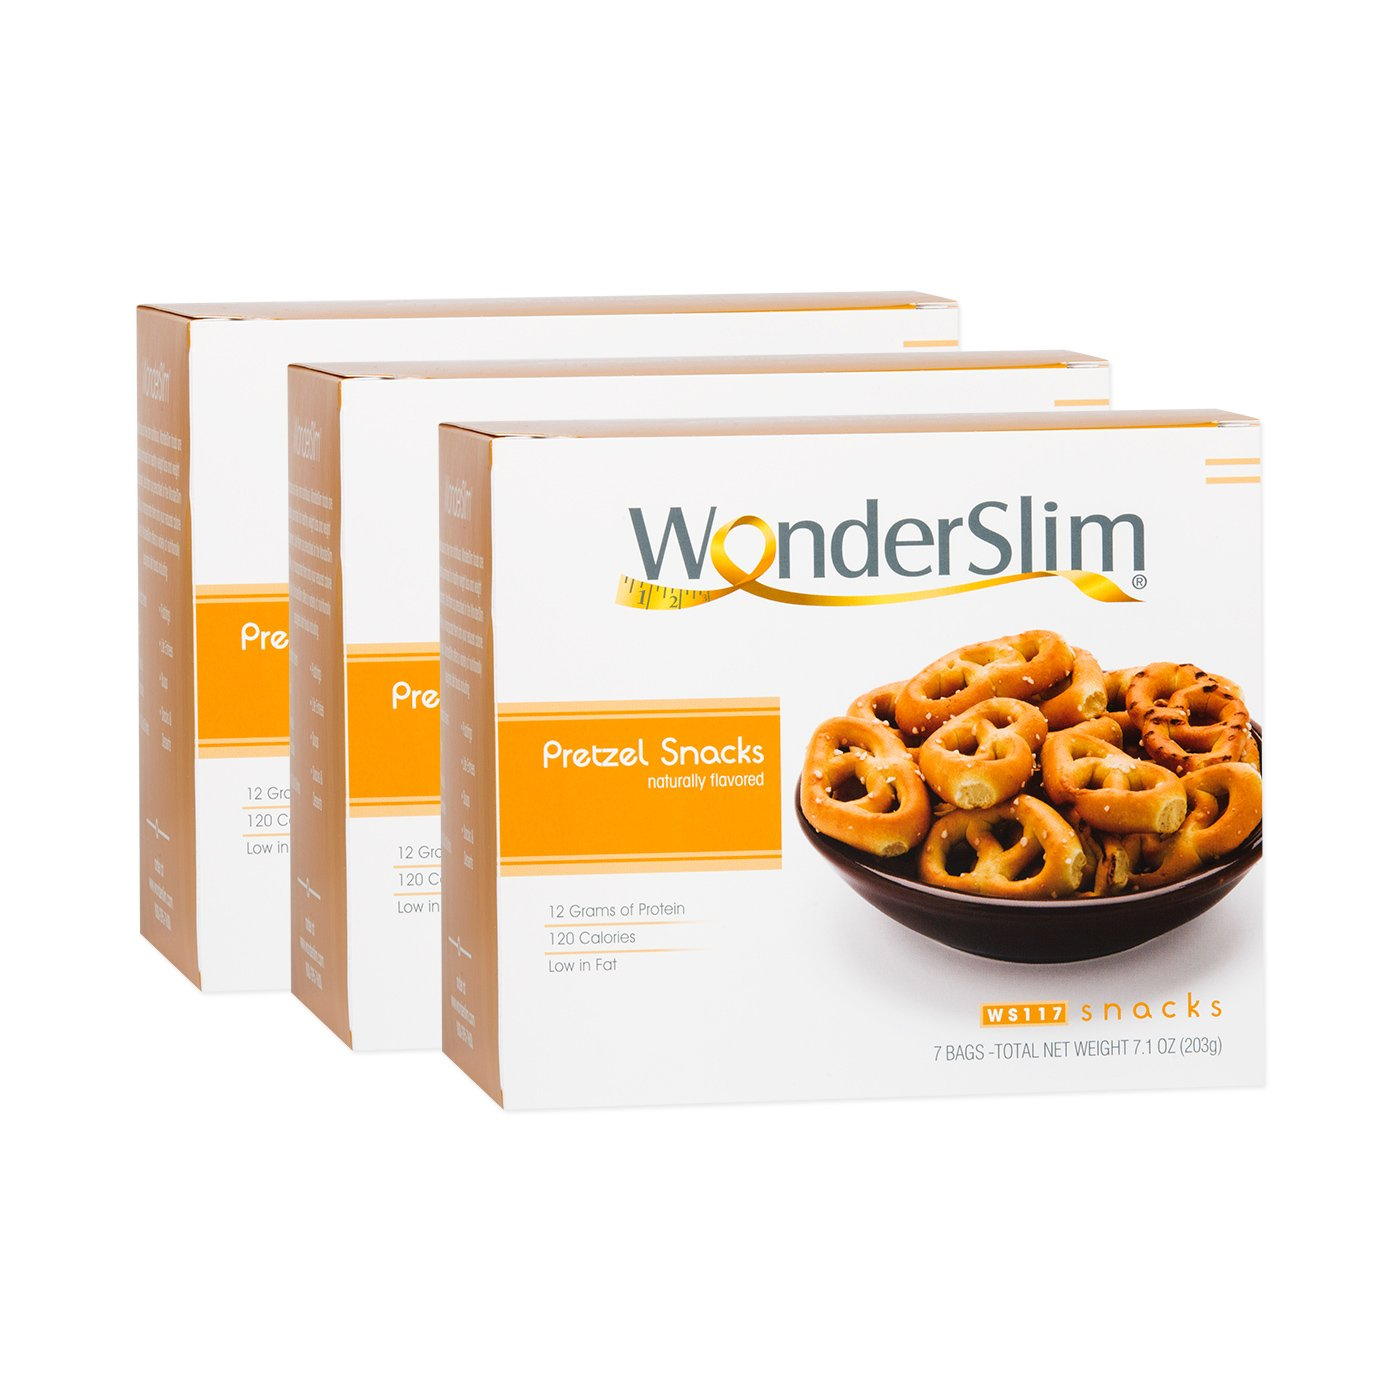 WonderSlim High Protein Pretzel Snacks - Low-Carb Diet Healthy 12g Protein Snack For Weight Loss - 3 Box Value Pack (Save 5%)